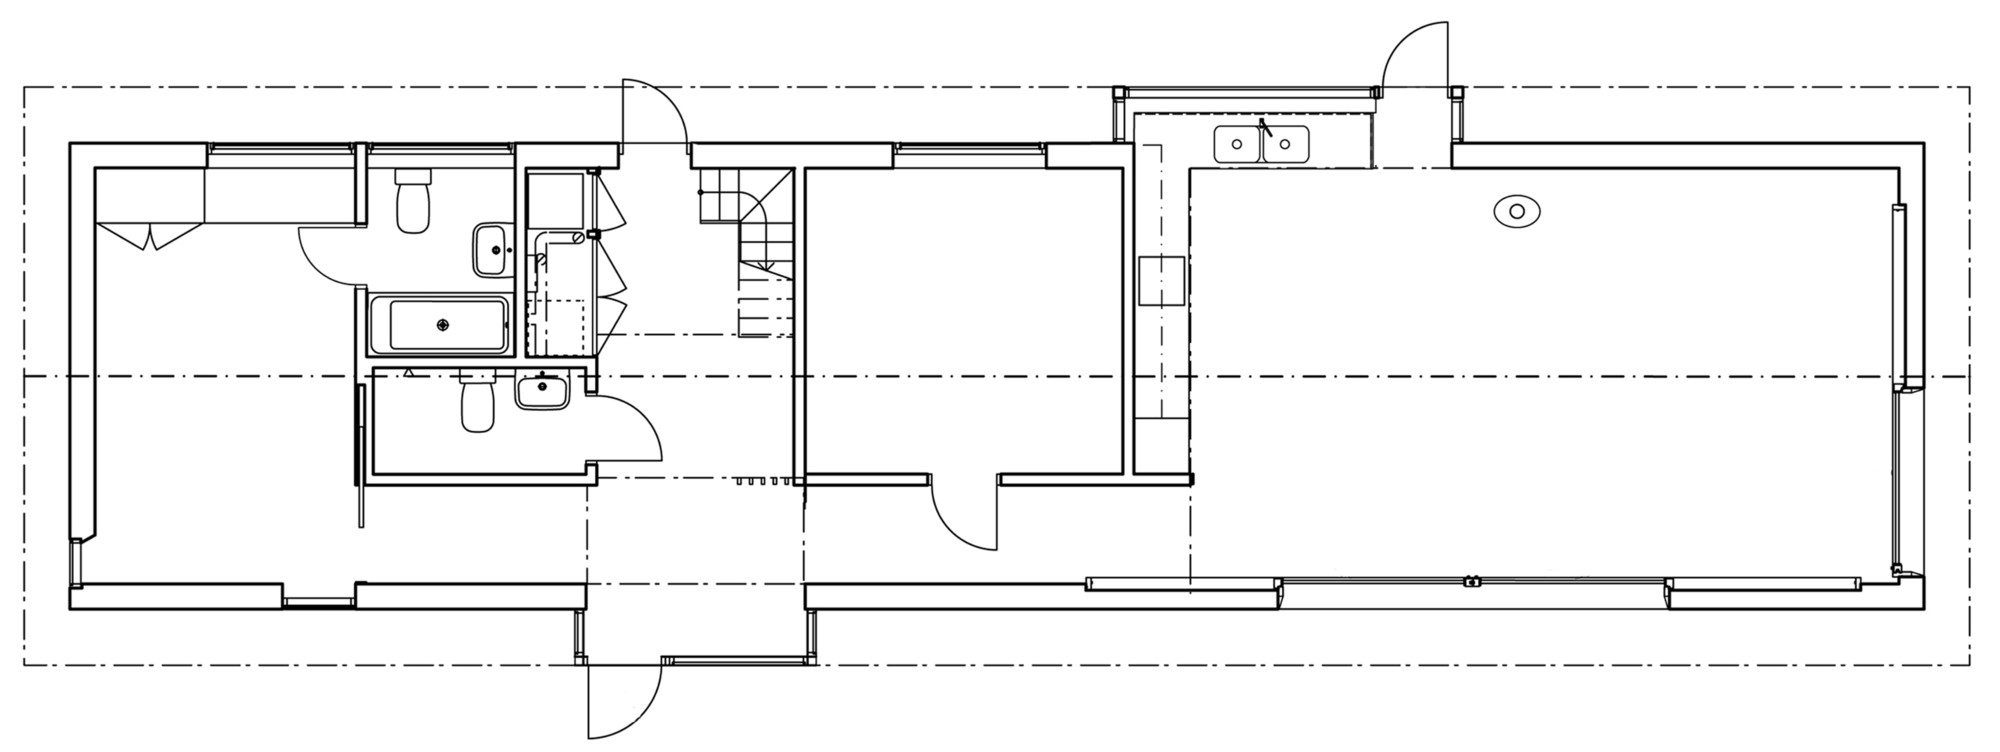 plan for summer house